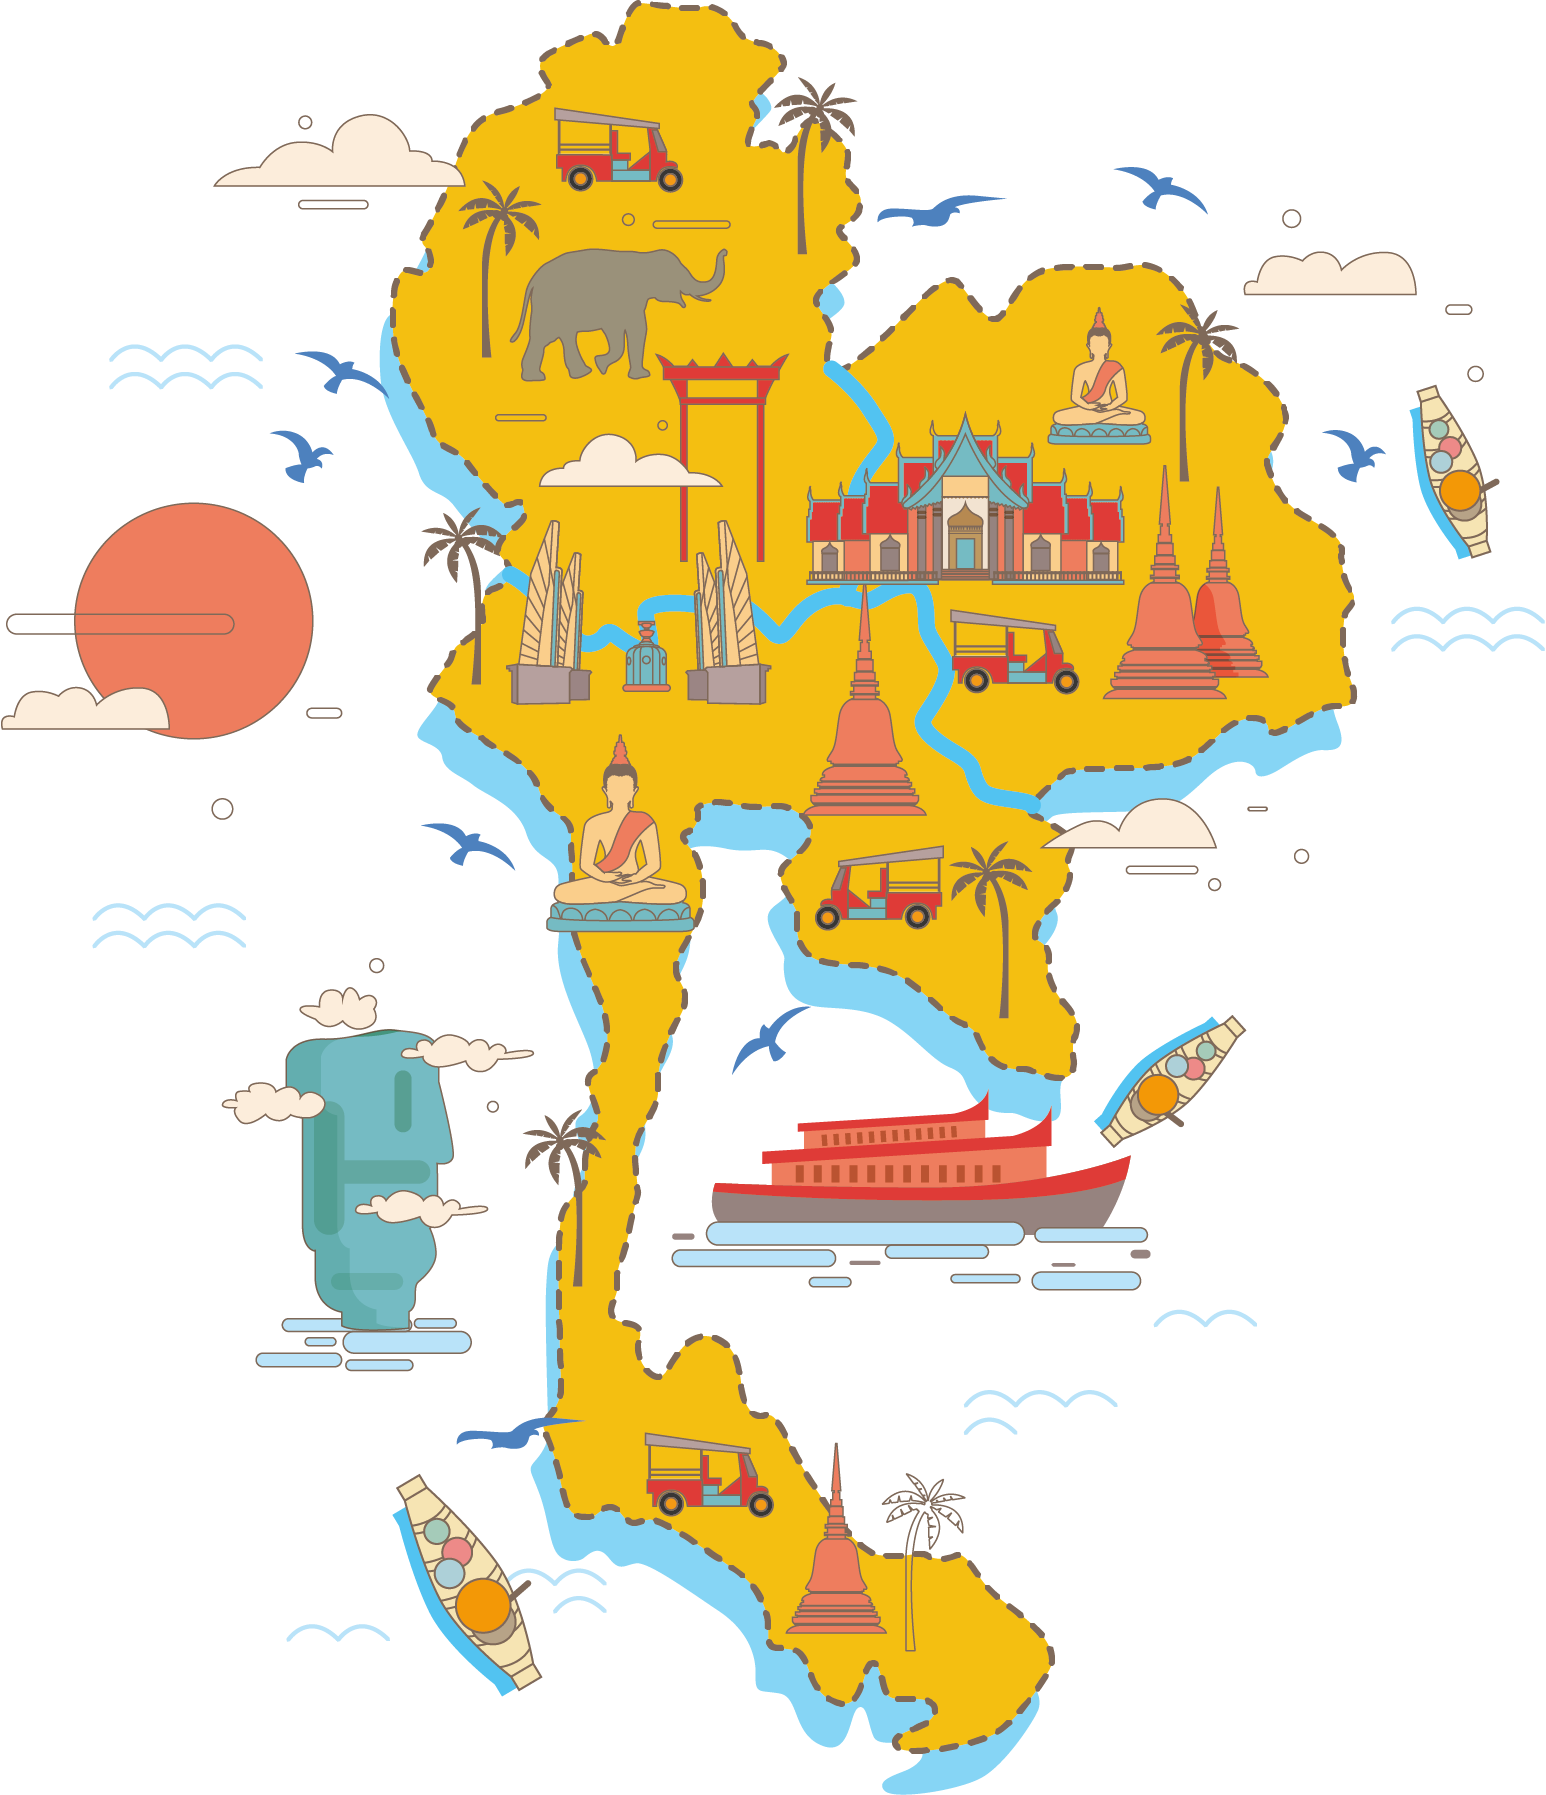 Thailand vector clipart vector freeuse Download Area Thailand Vector Art Map Free Clipart HQ HQ PNG ... vector freeuse